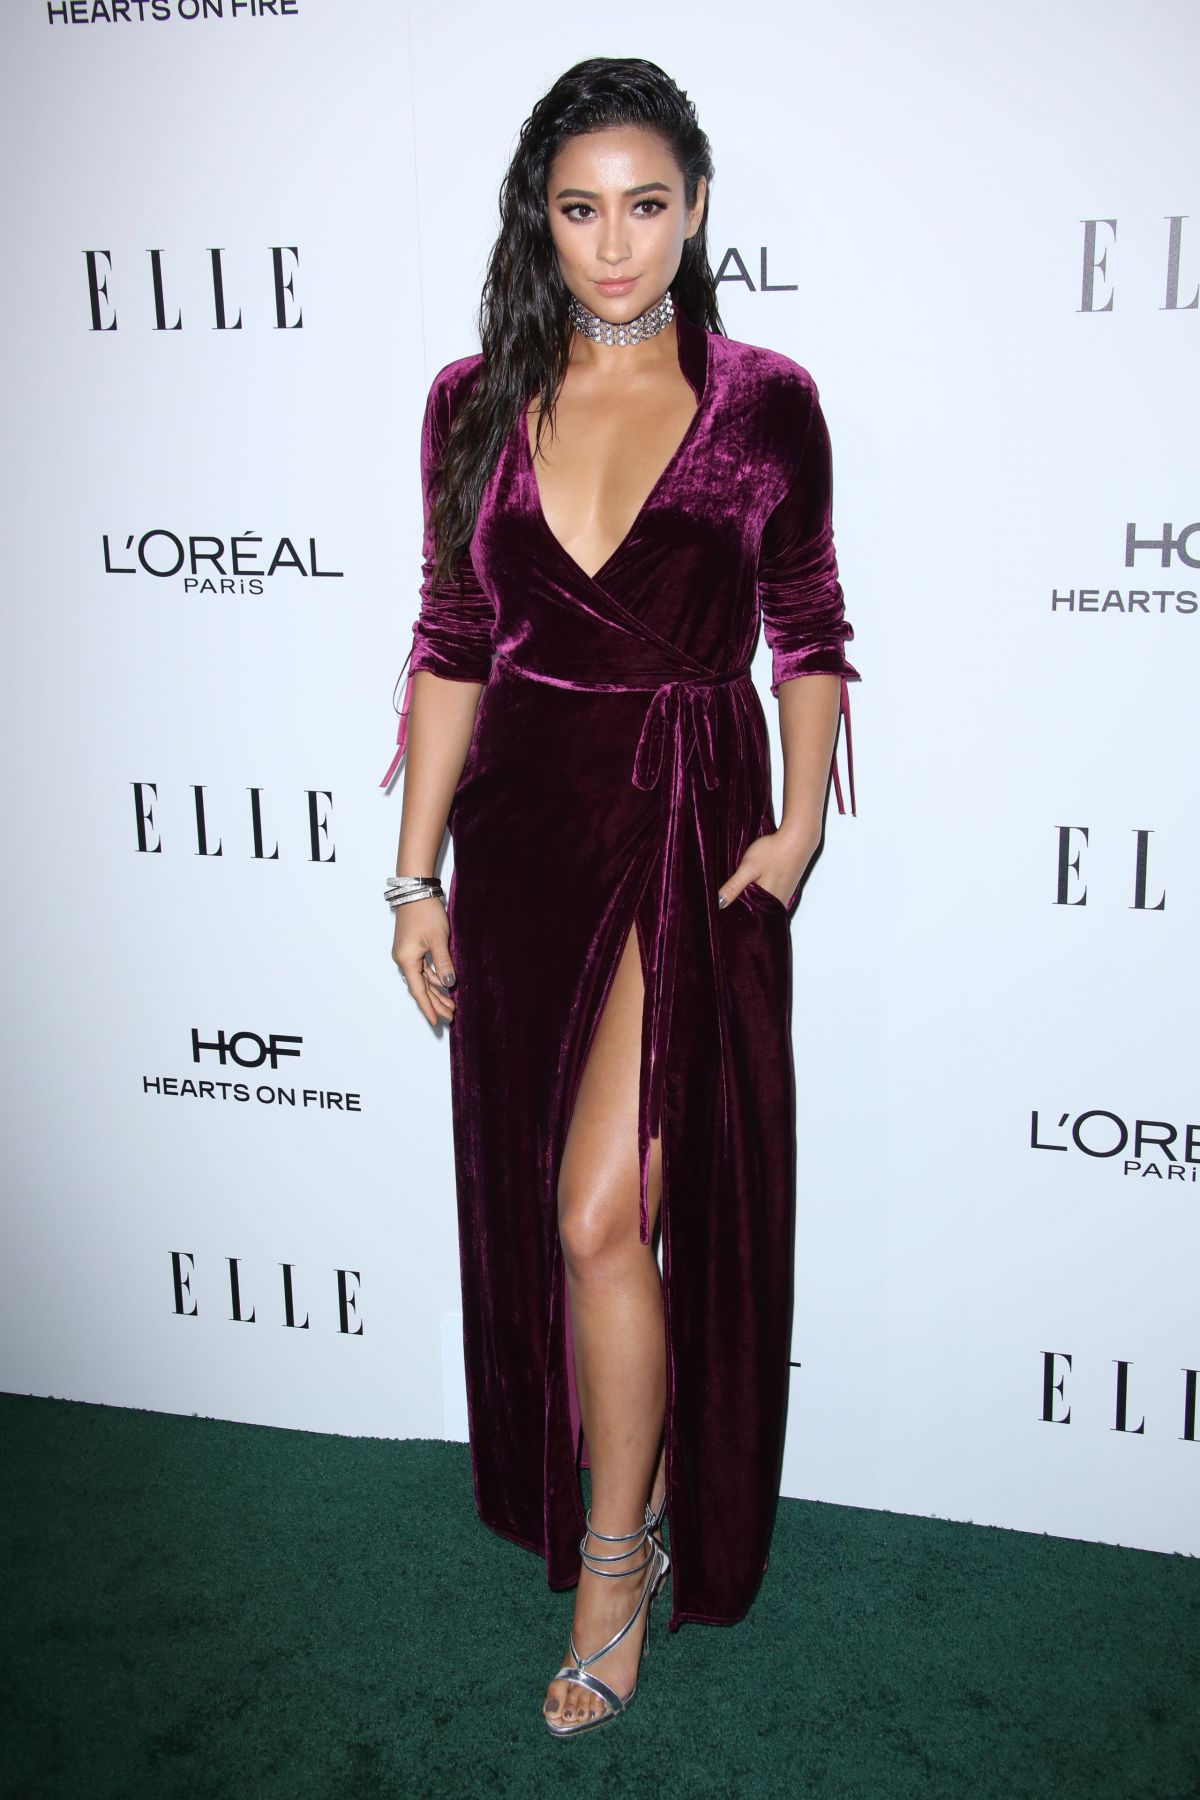 Shay Mitchell At 23rd Annual ELLE Women In Hollywood Awards in Los Angeles